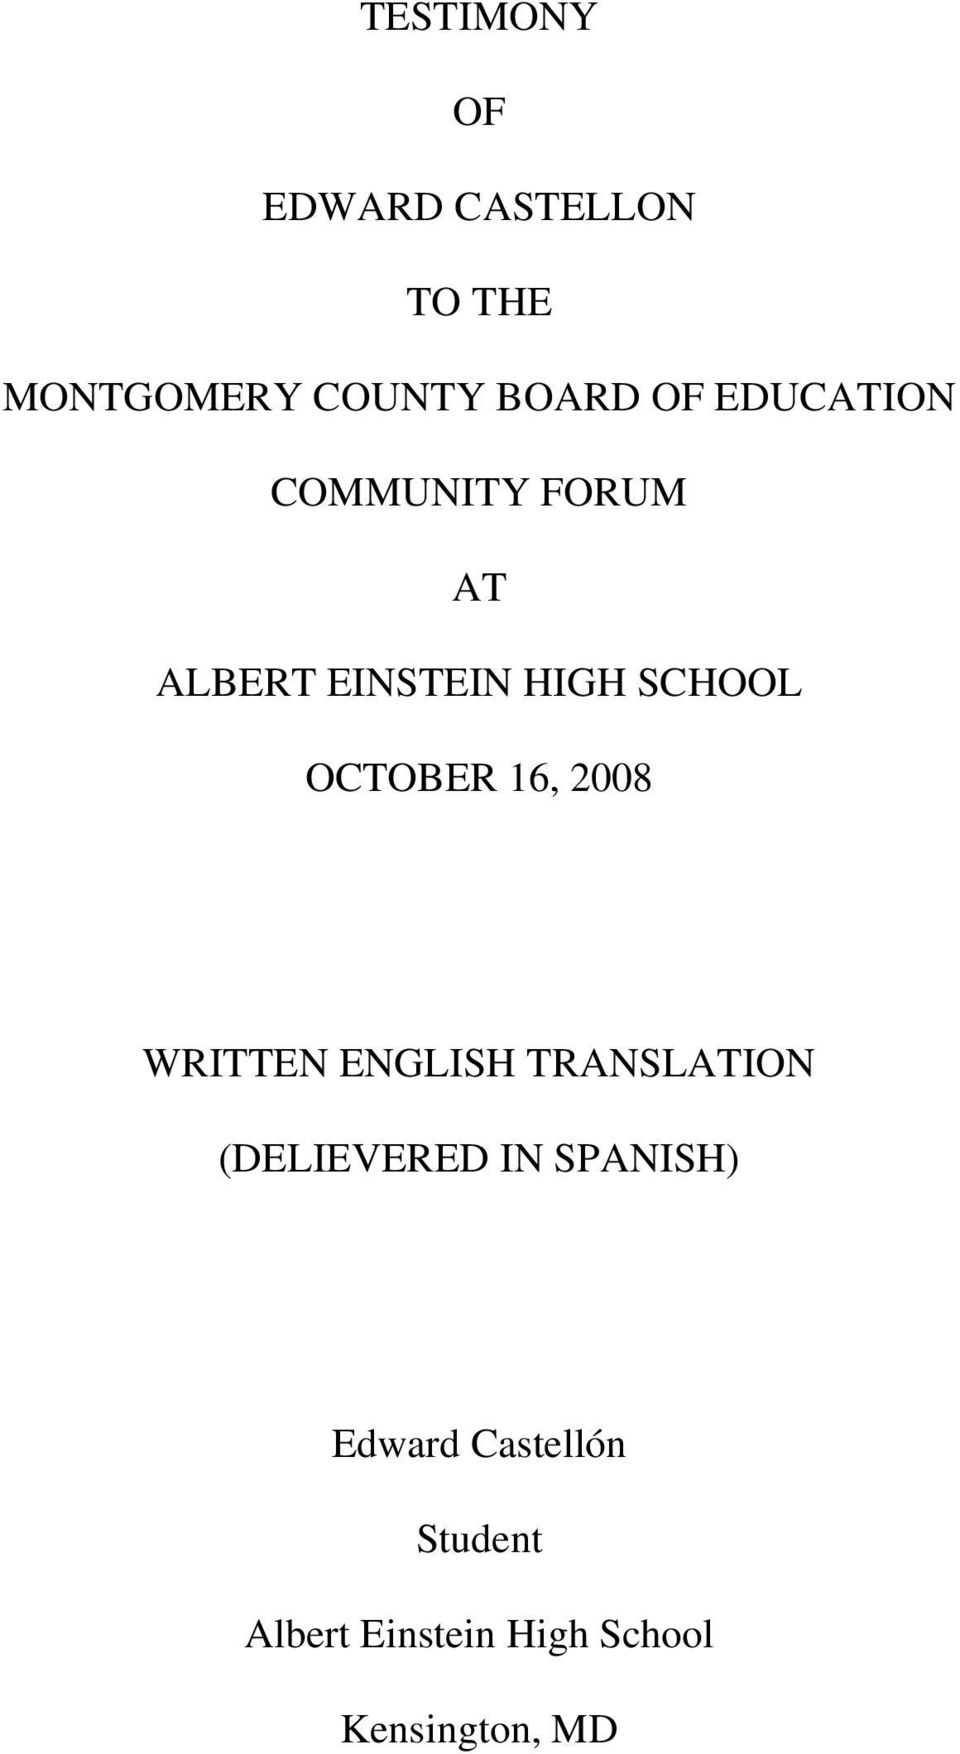 16, 2008 WRITTEN ENGLISH TRANSLATION (DELIEVERED IN SPANISH)